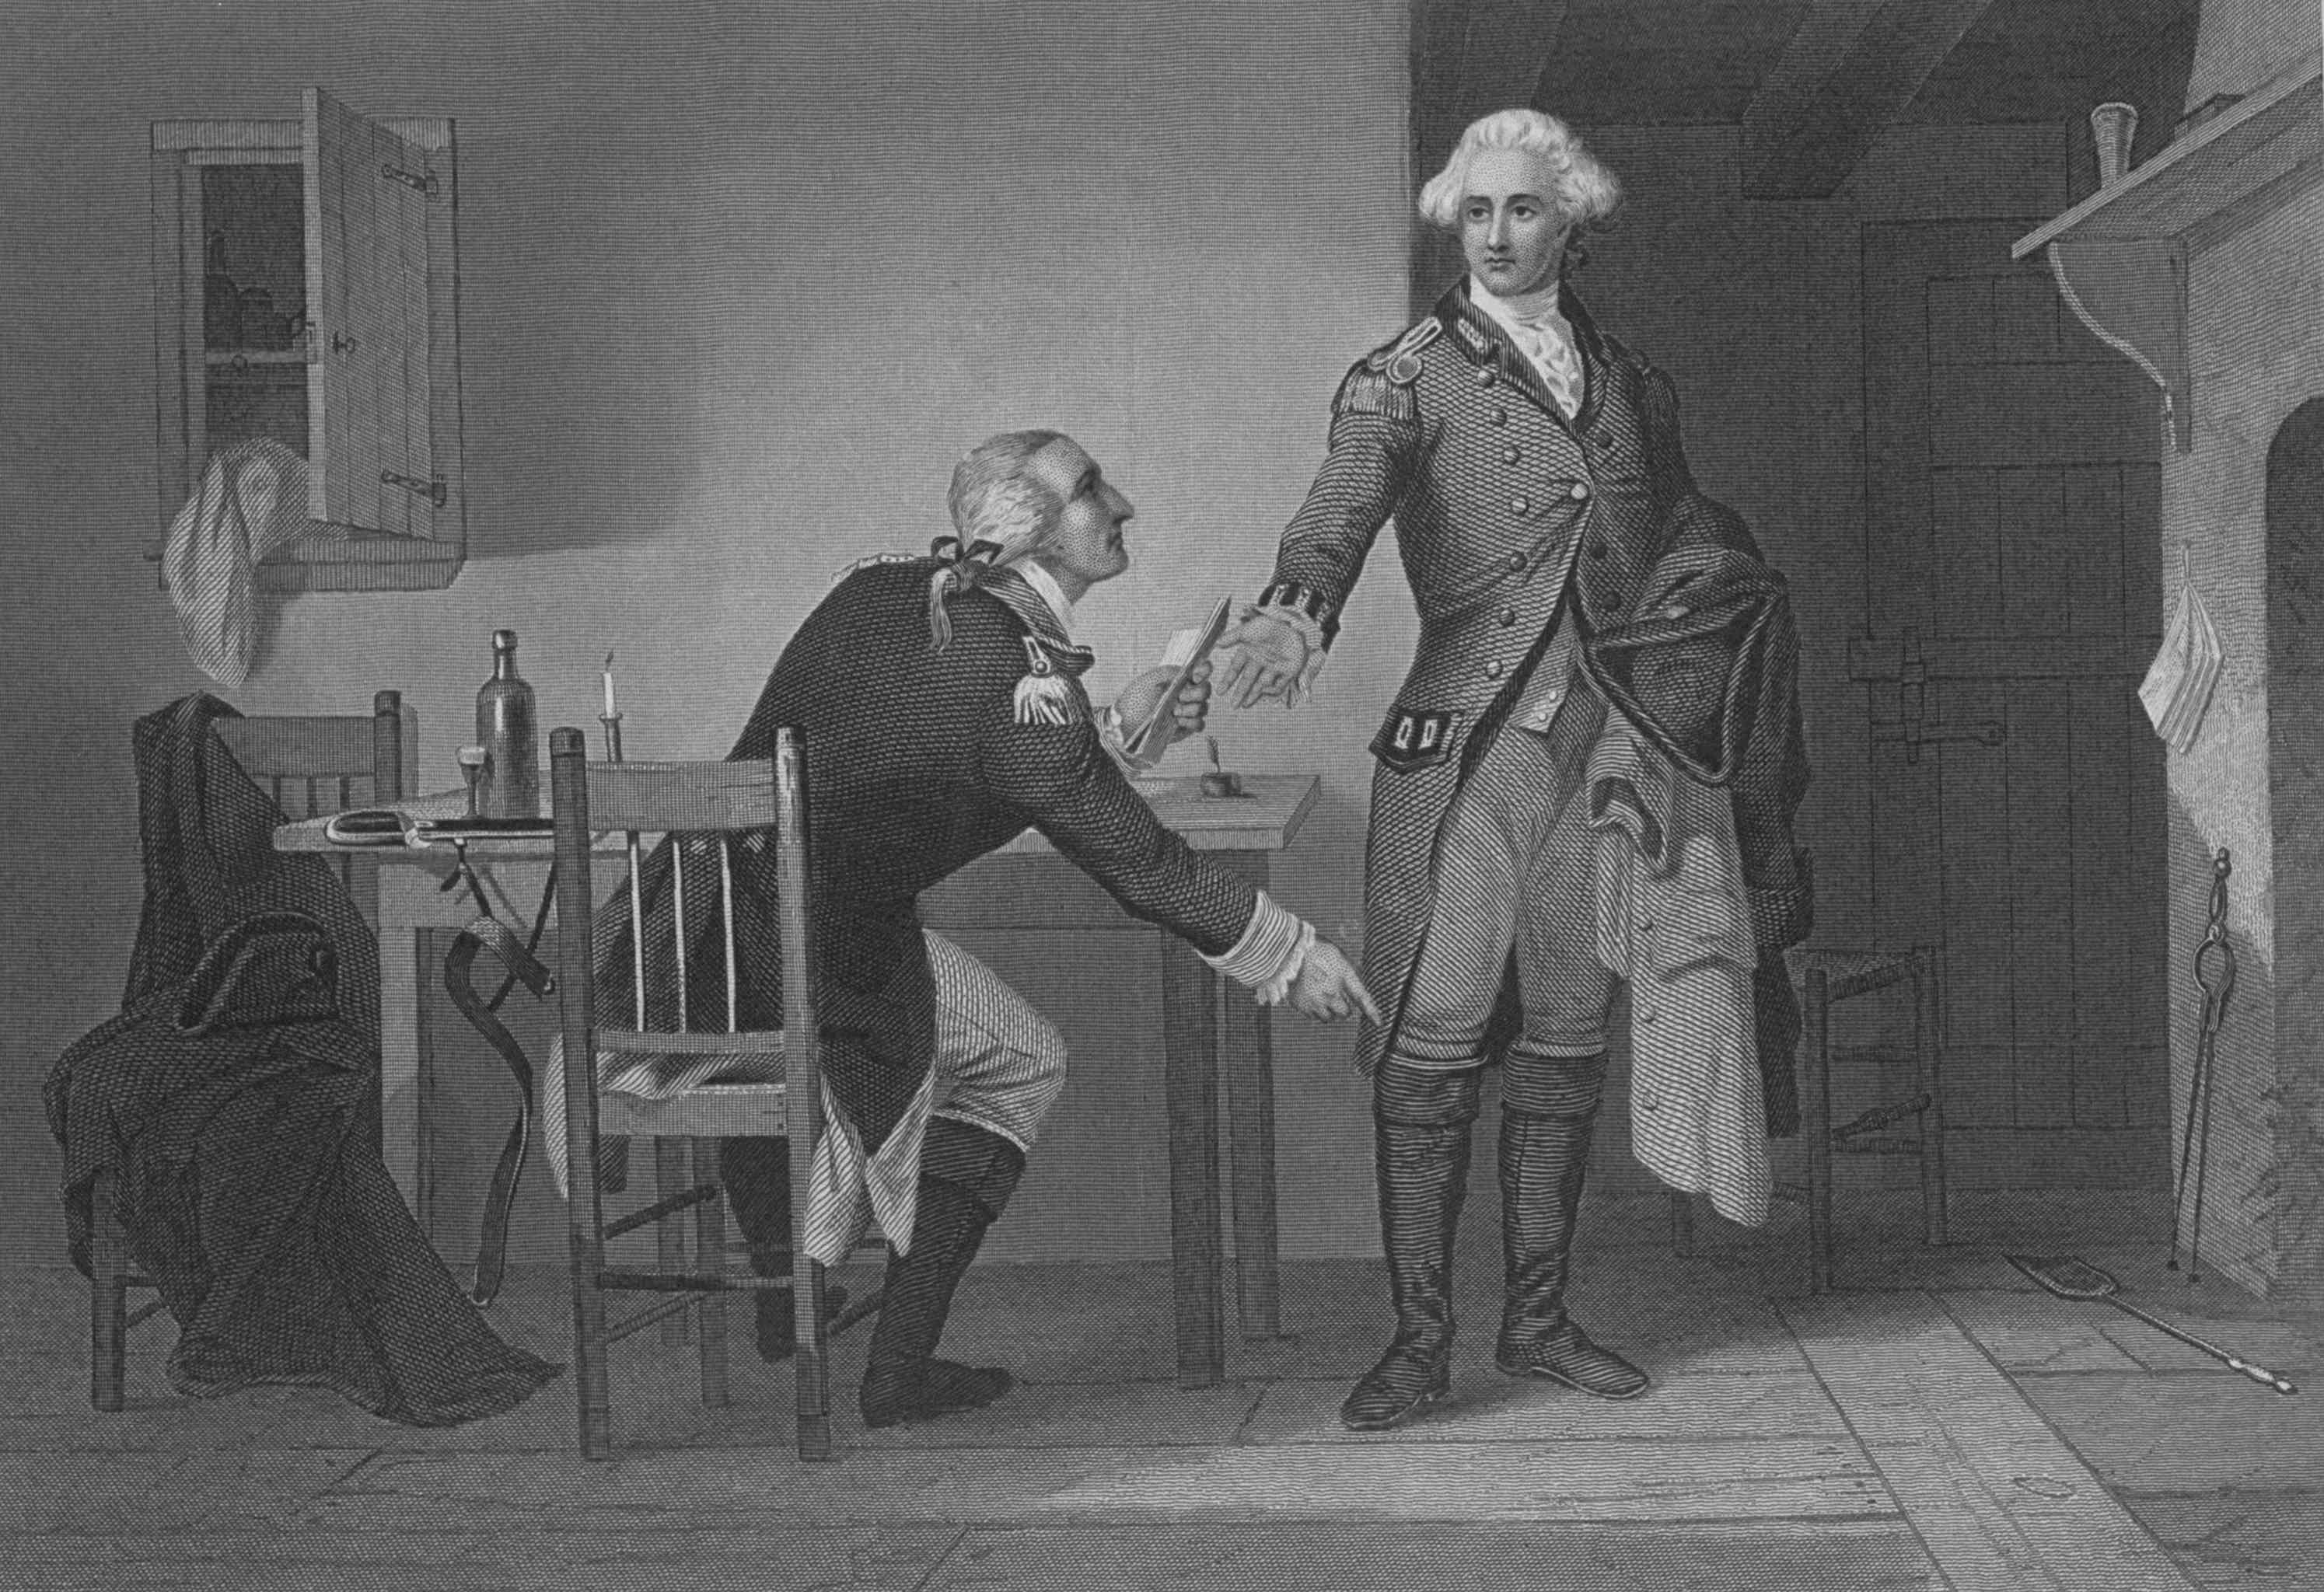 American Revolutionary general and traitor Benedict Arnold (1741-1801) conspiring with Loyalist British Major John Andre to commit treason.